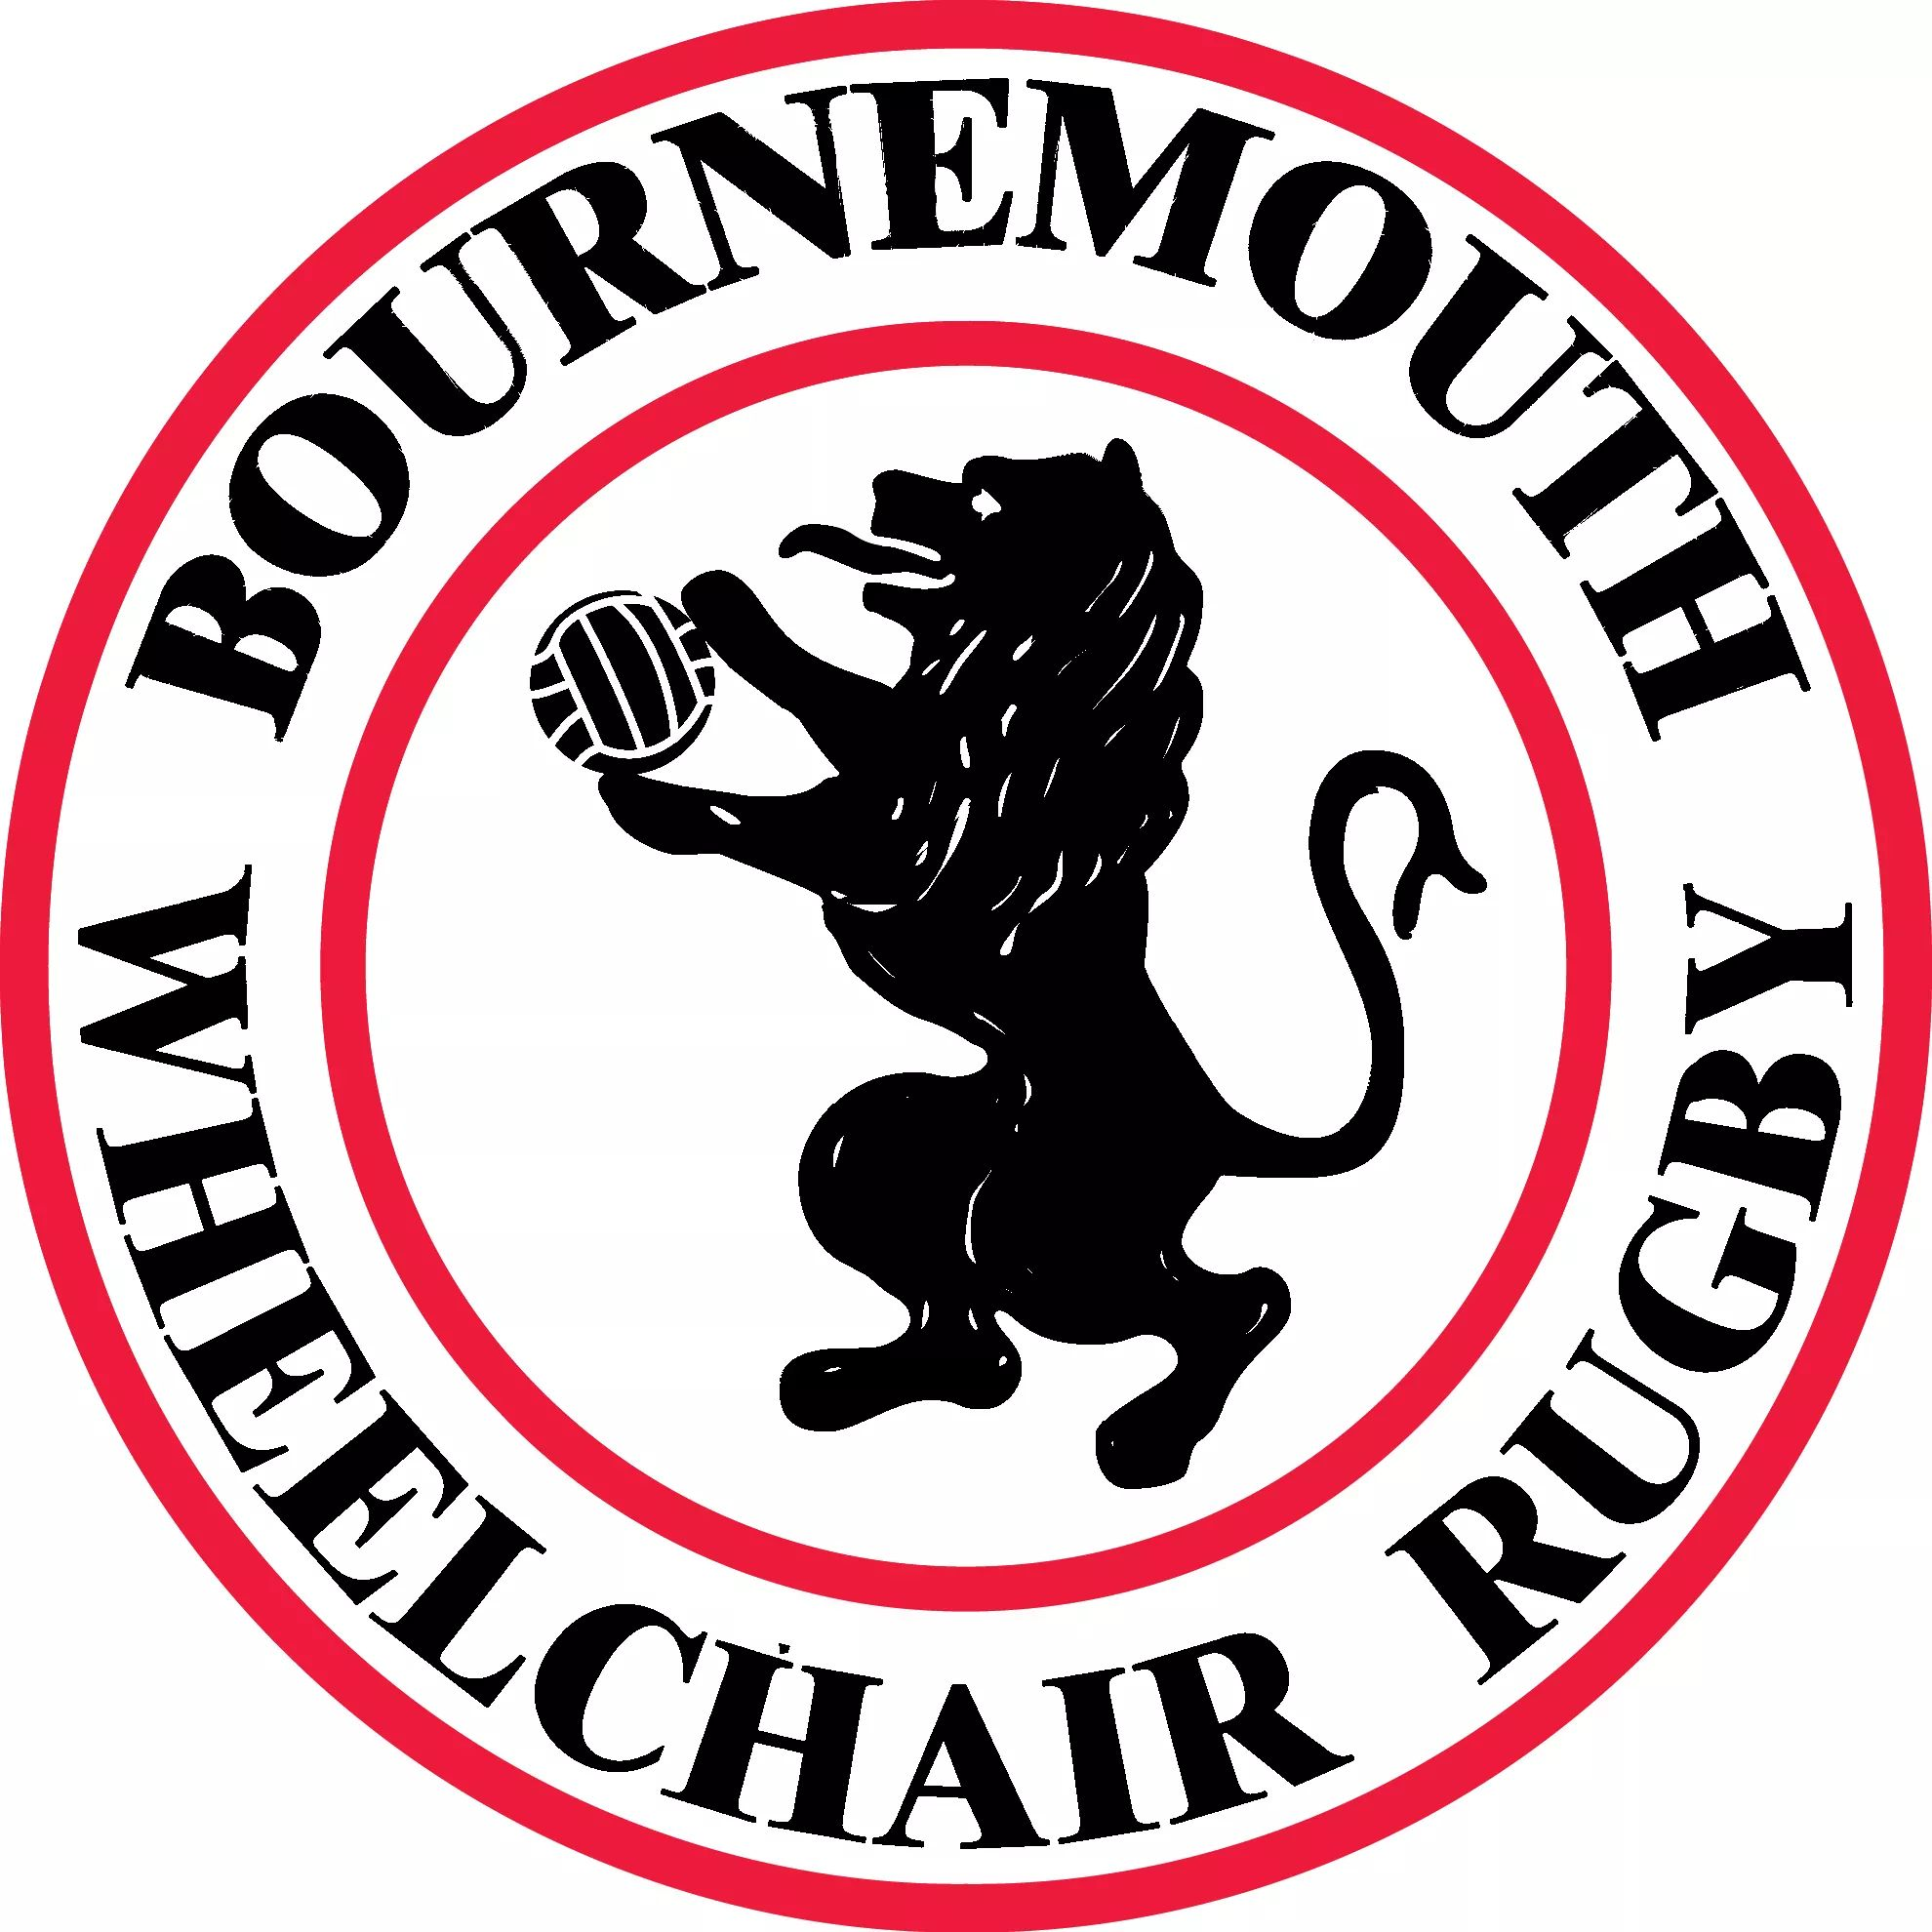 Bournemouth Lions Wheelchair Rugby logo